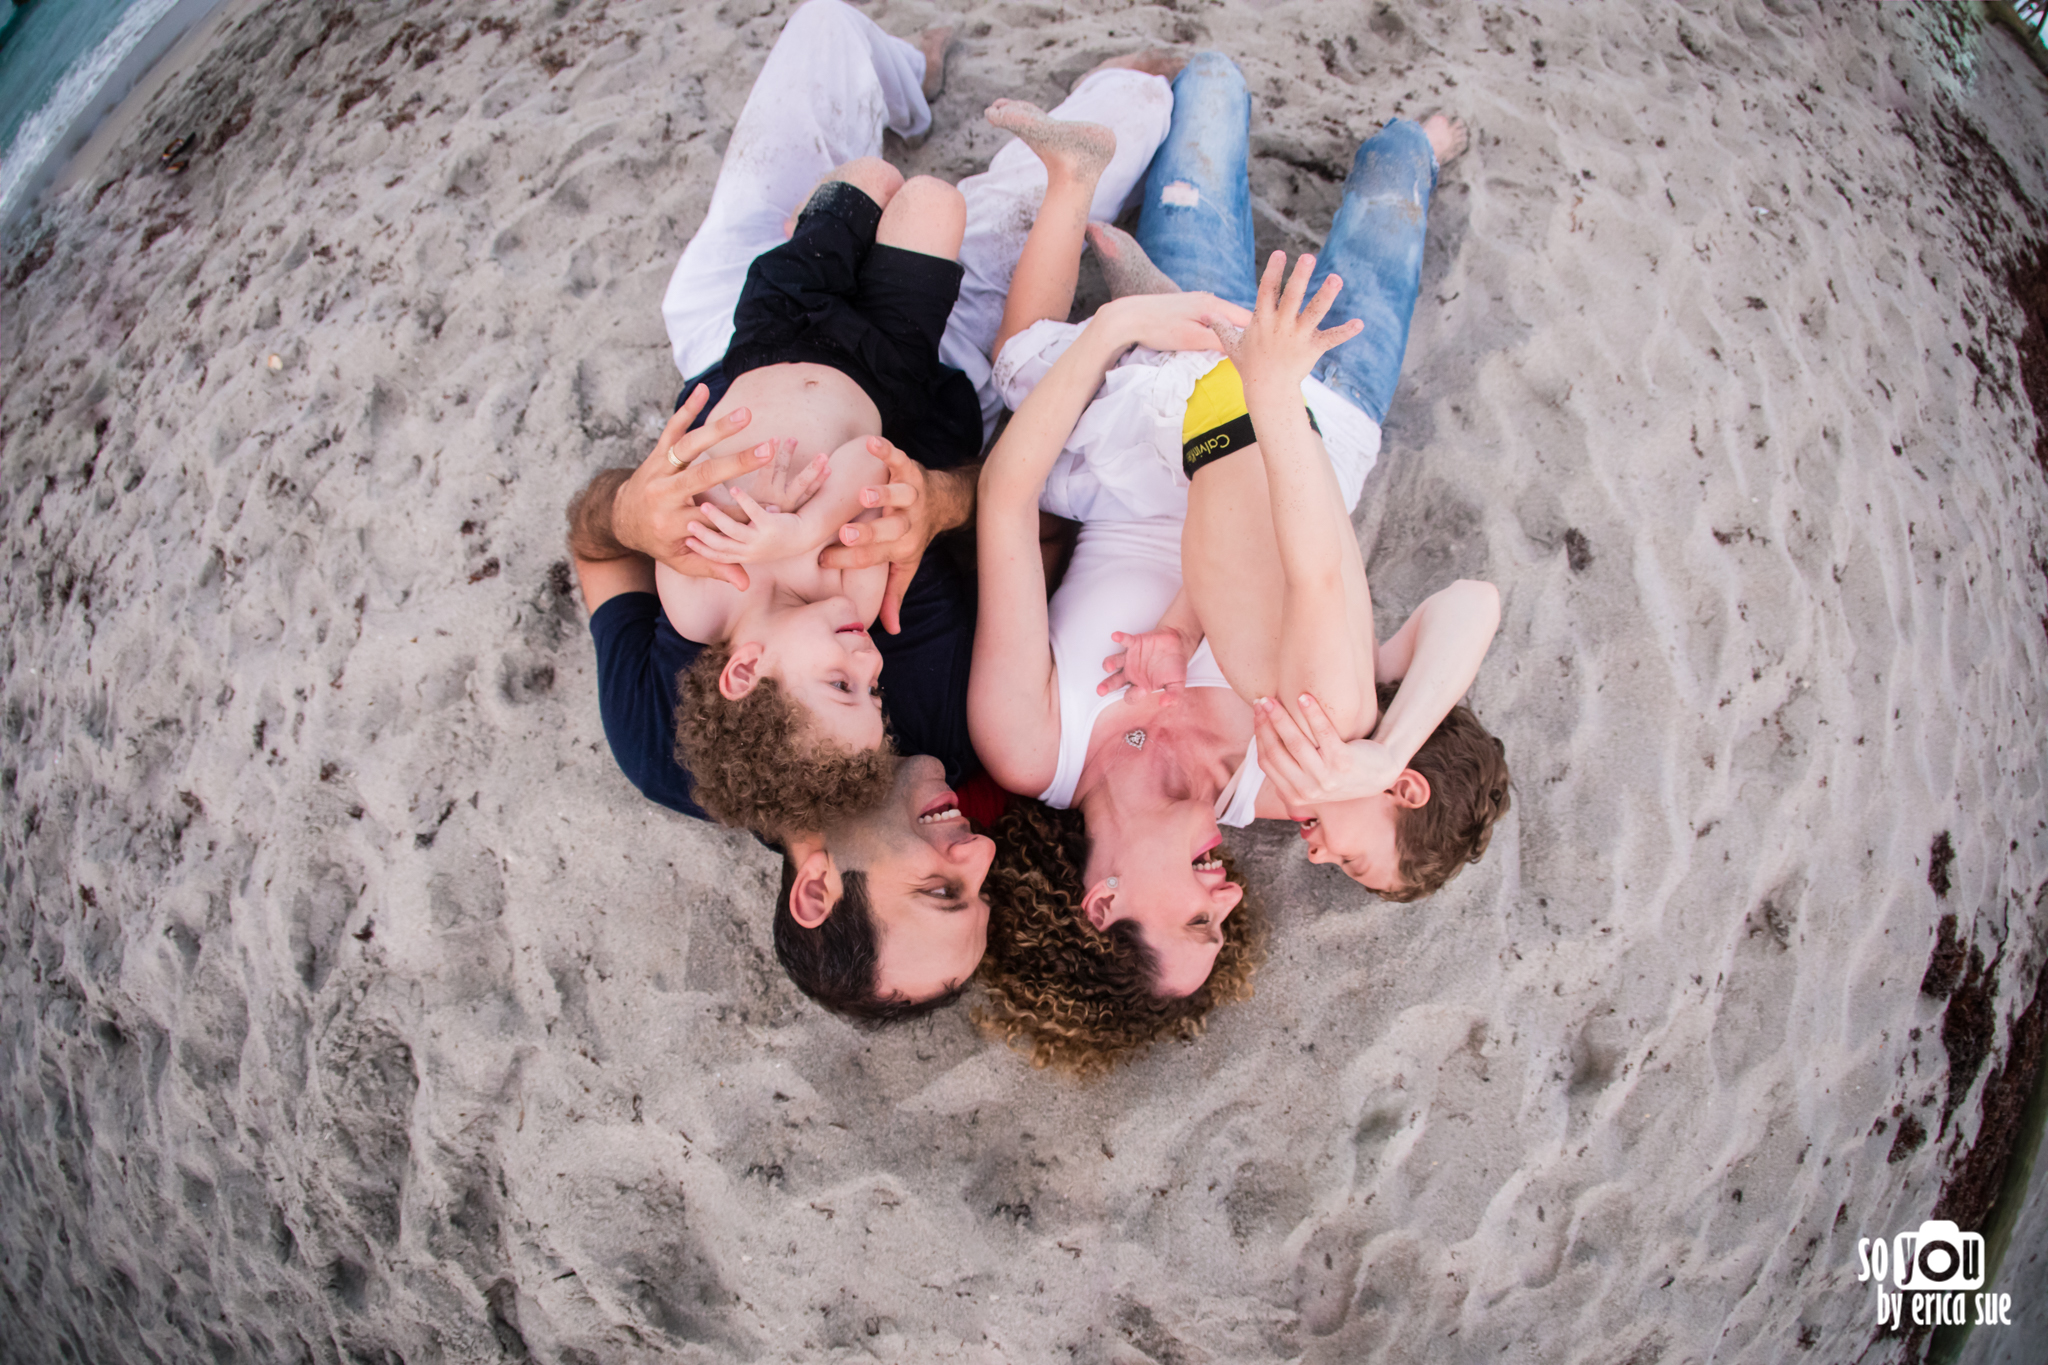 south-florida-maternity-family-photographer-so-you-by-erica-sue-dania-beach-8290.jpg